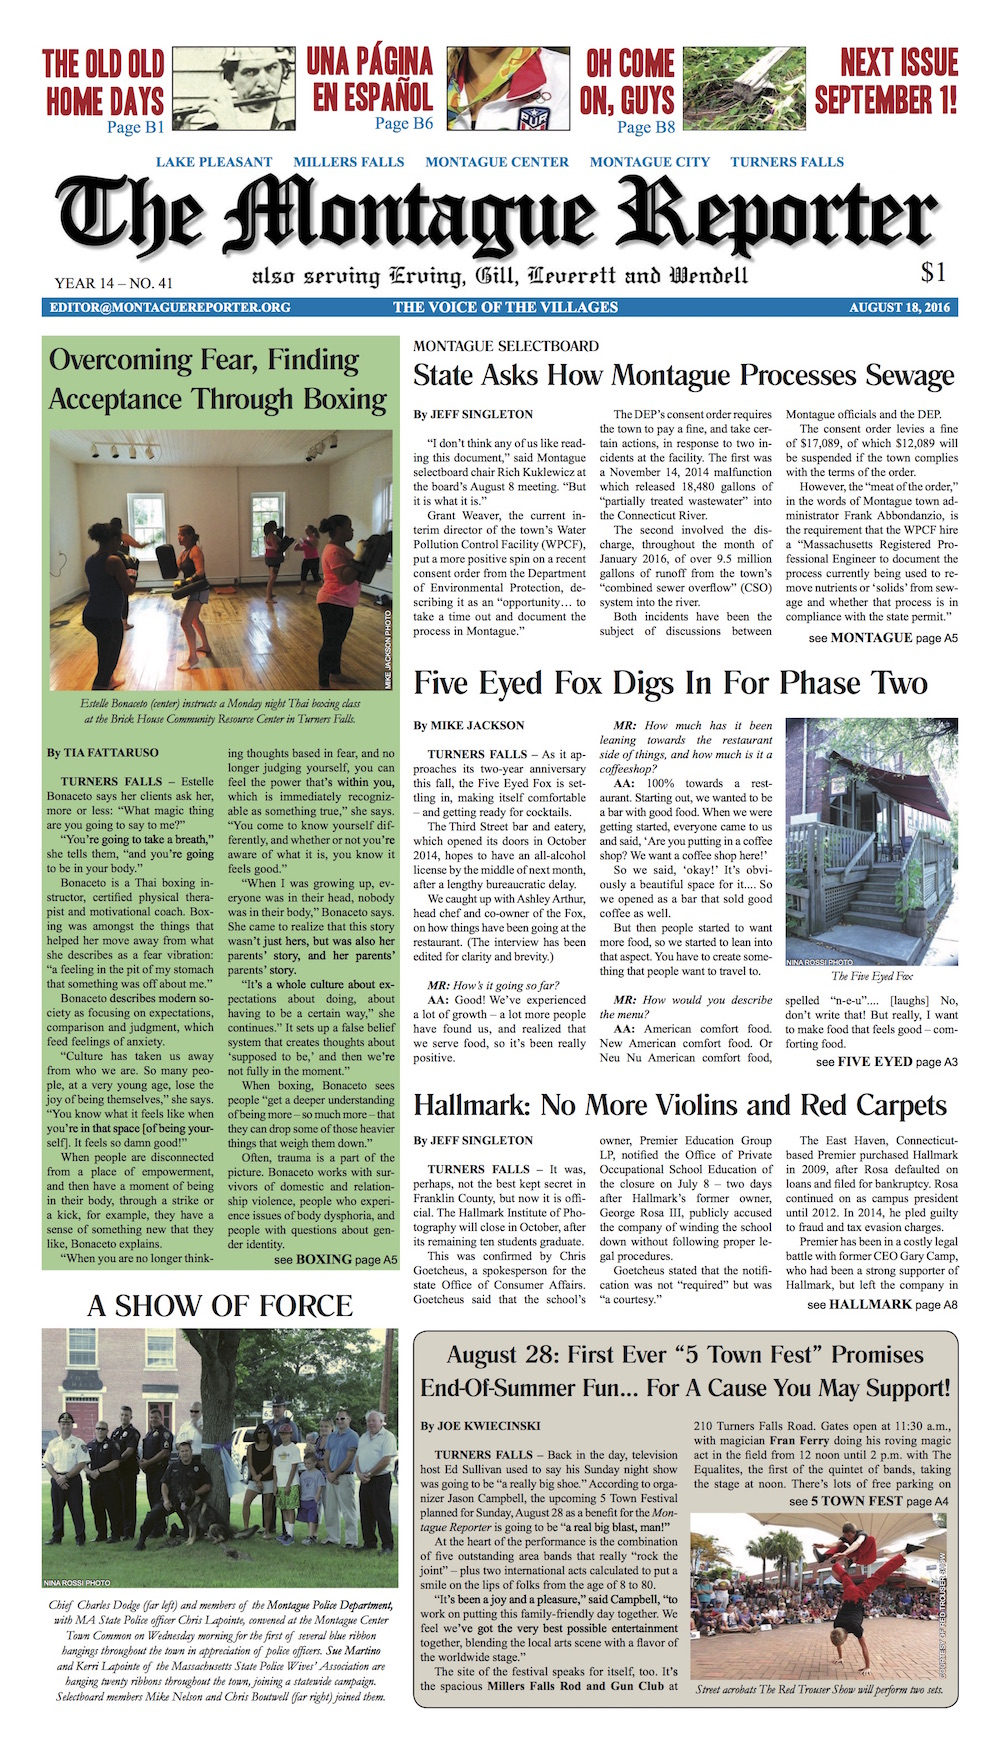 Page A1, 8/18/2016